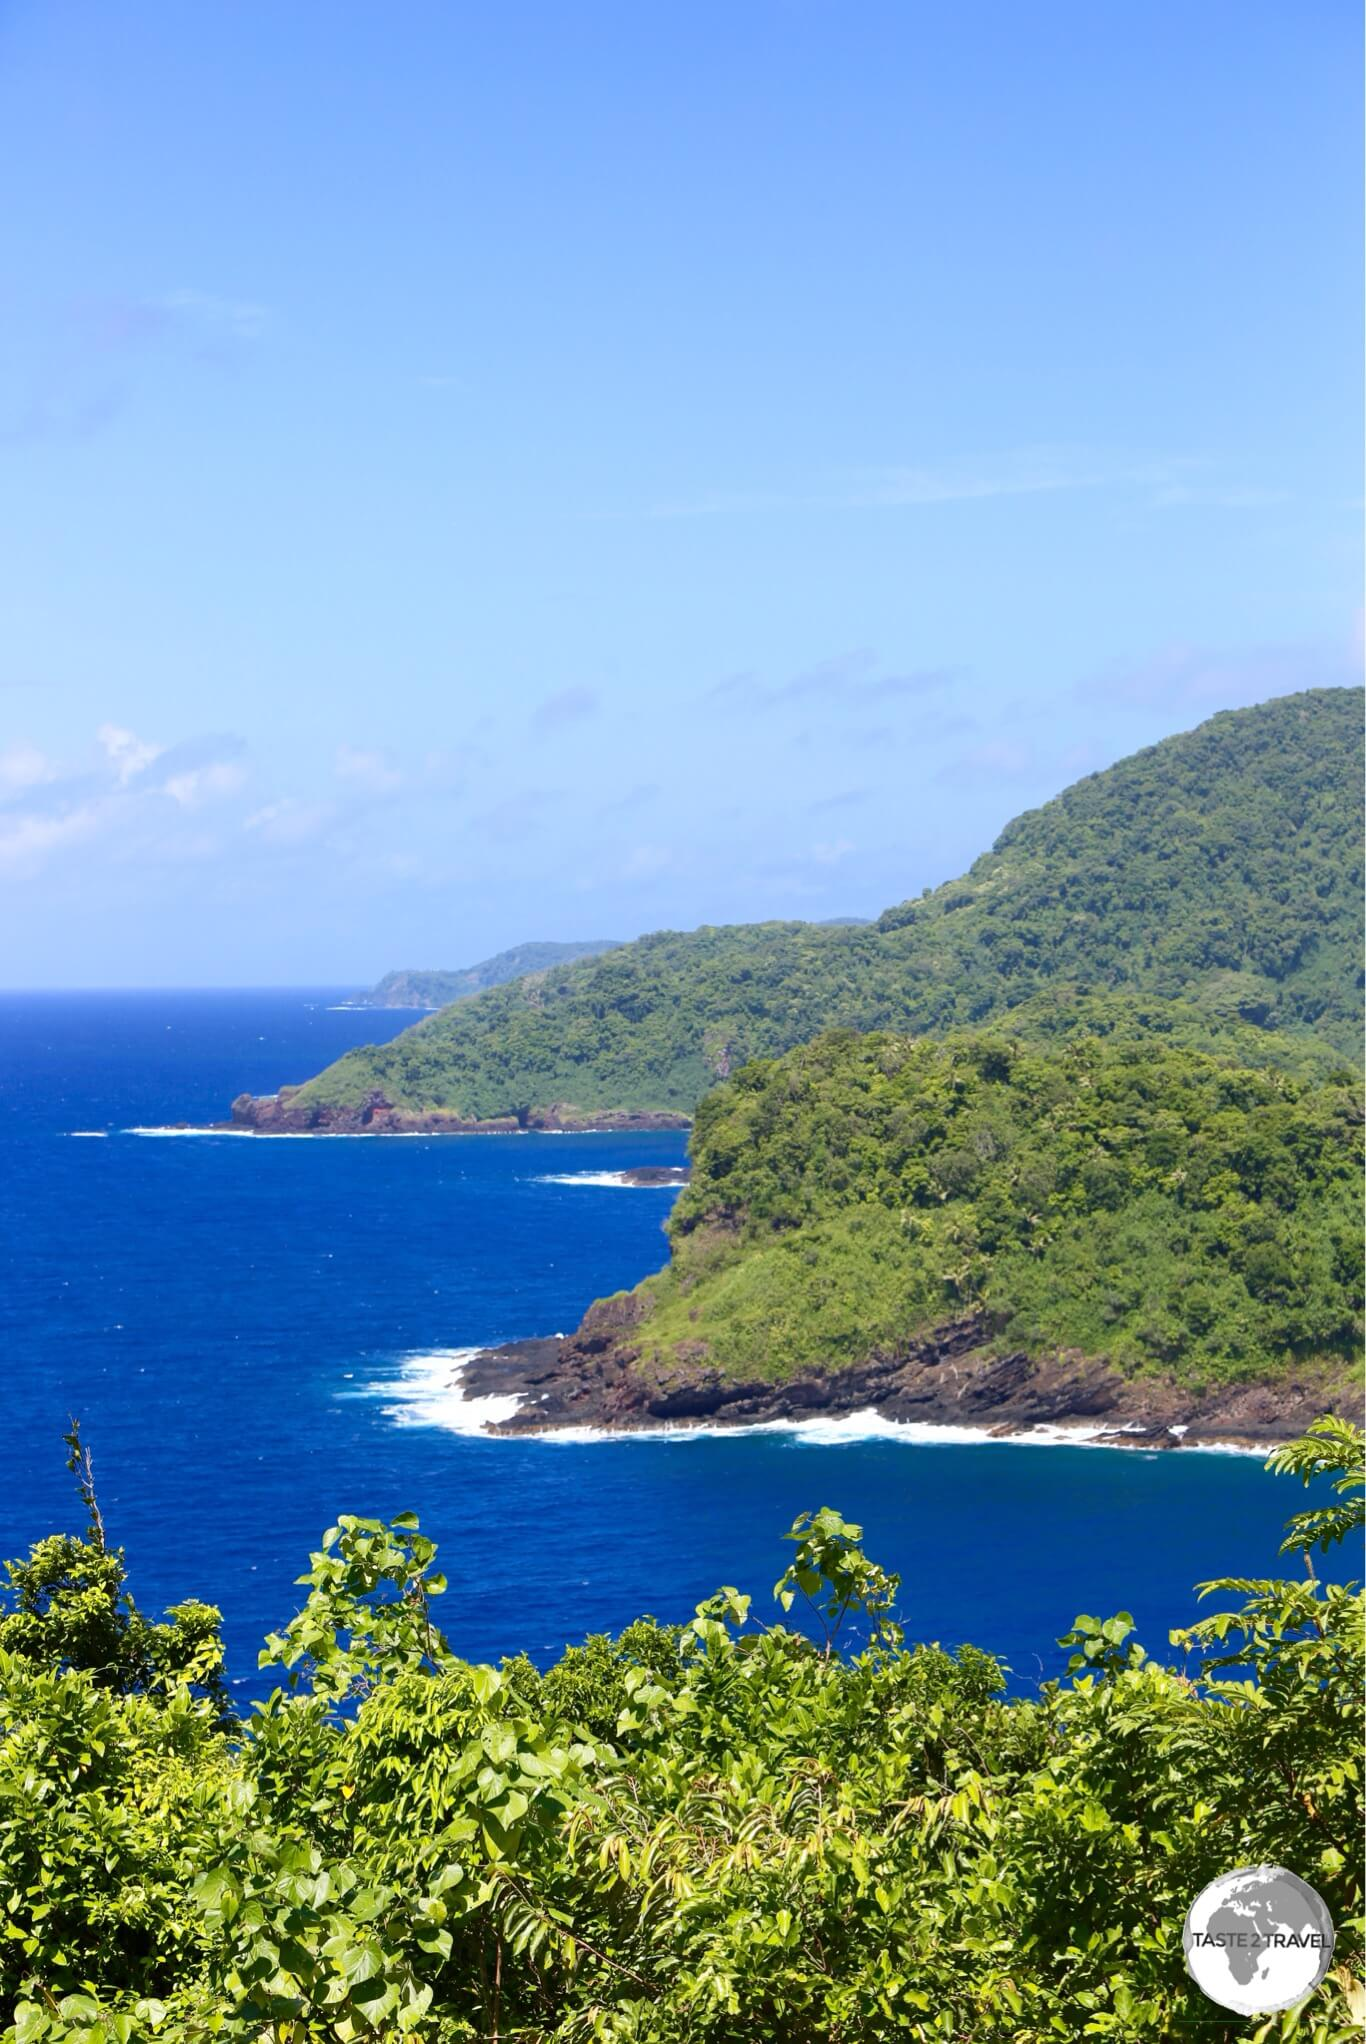 A view of the north coast of Tutuila, part of the National Park of American Samoa.